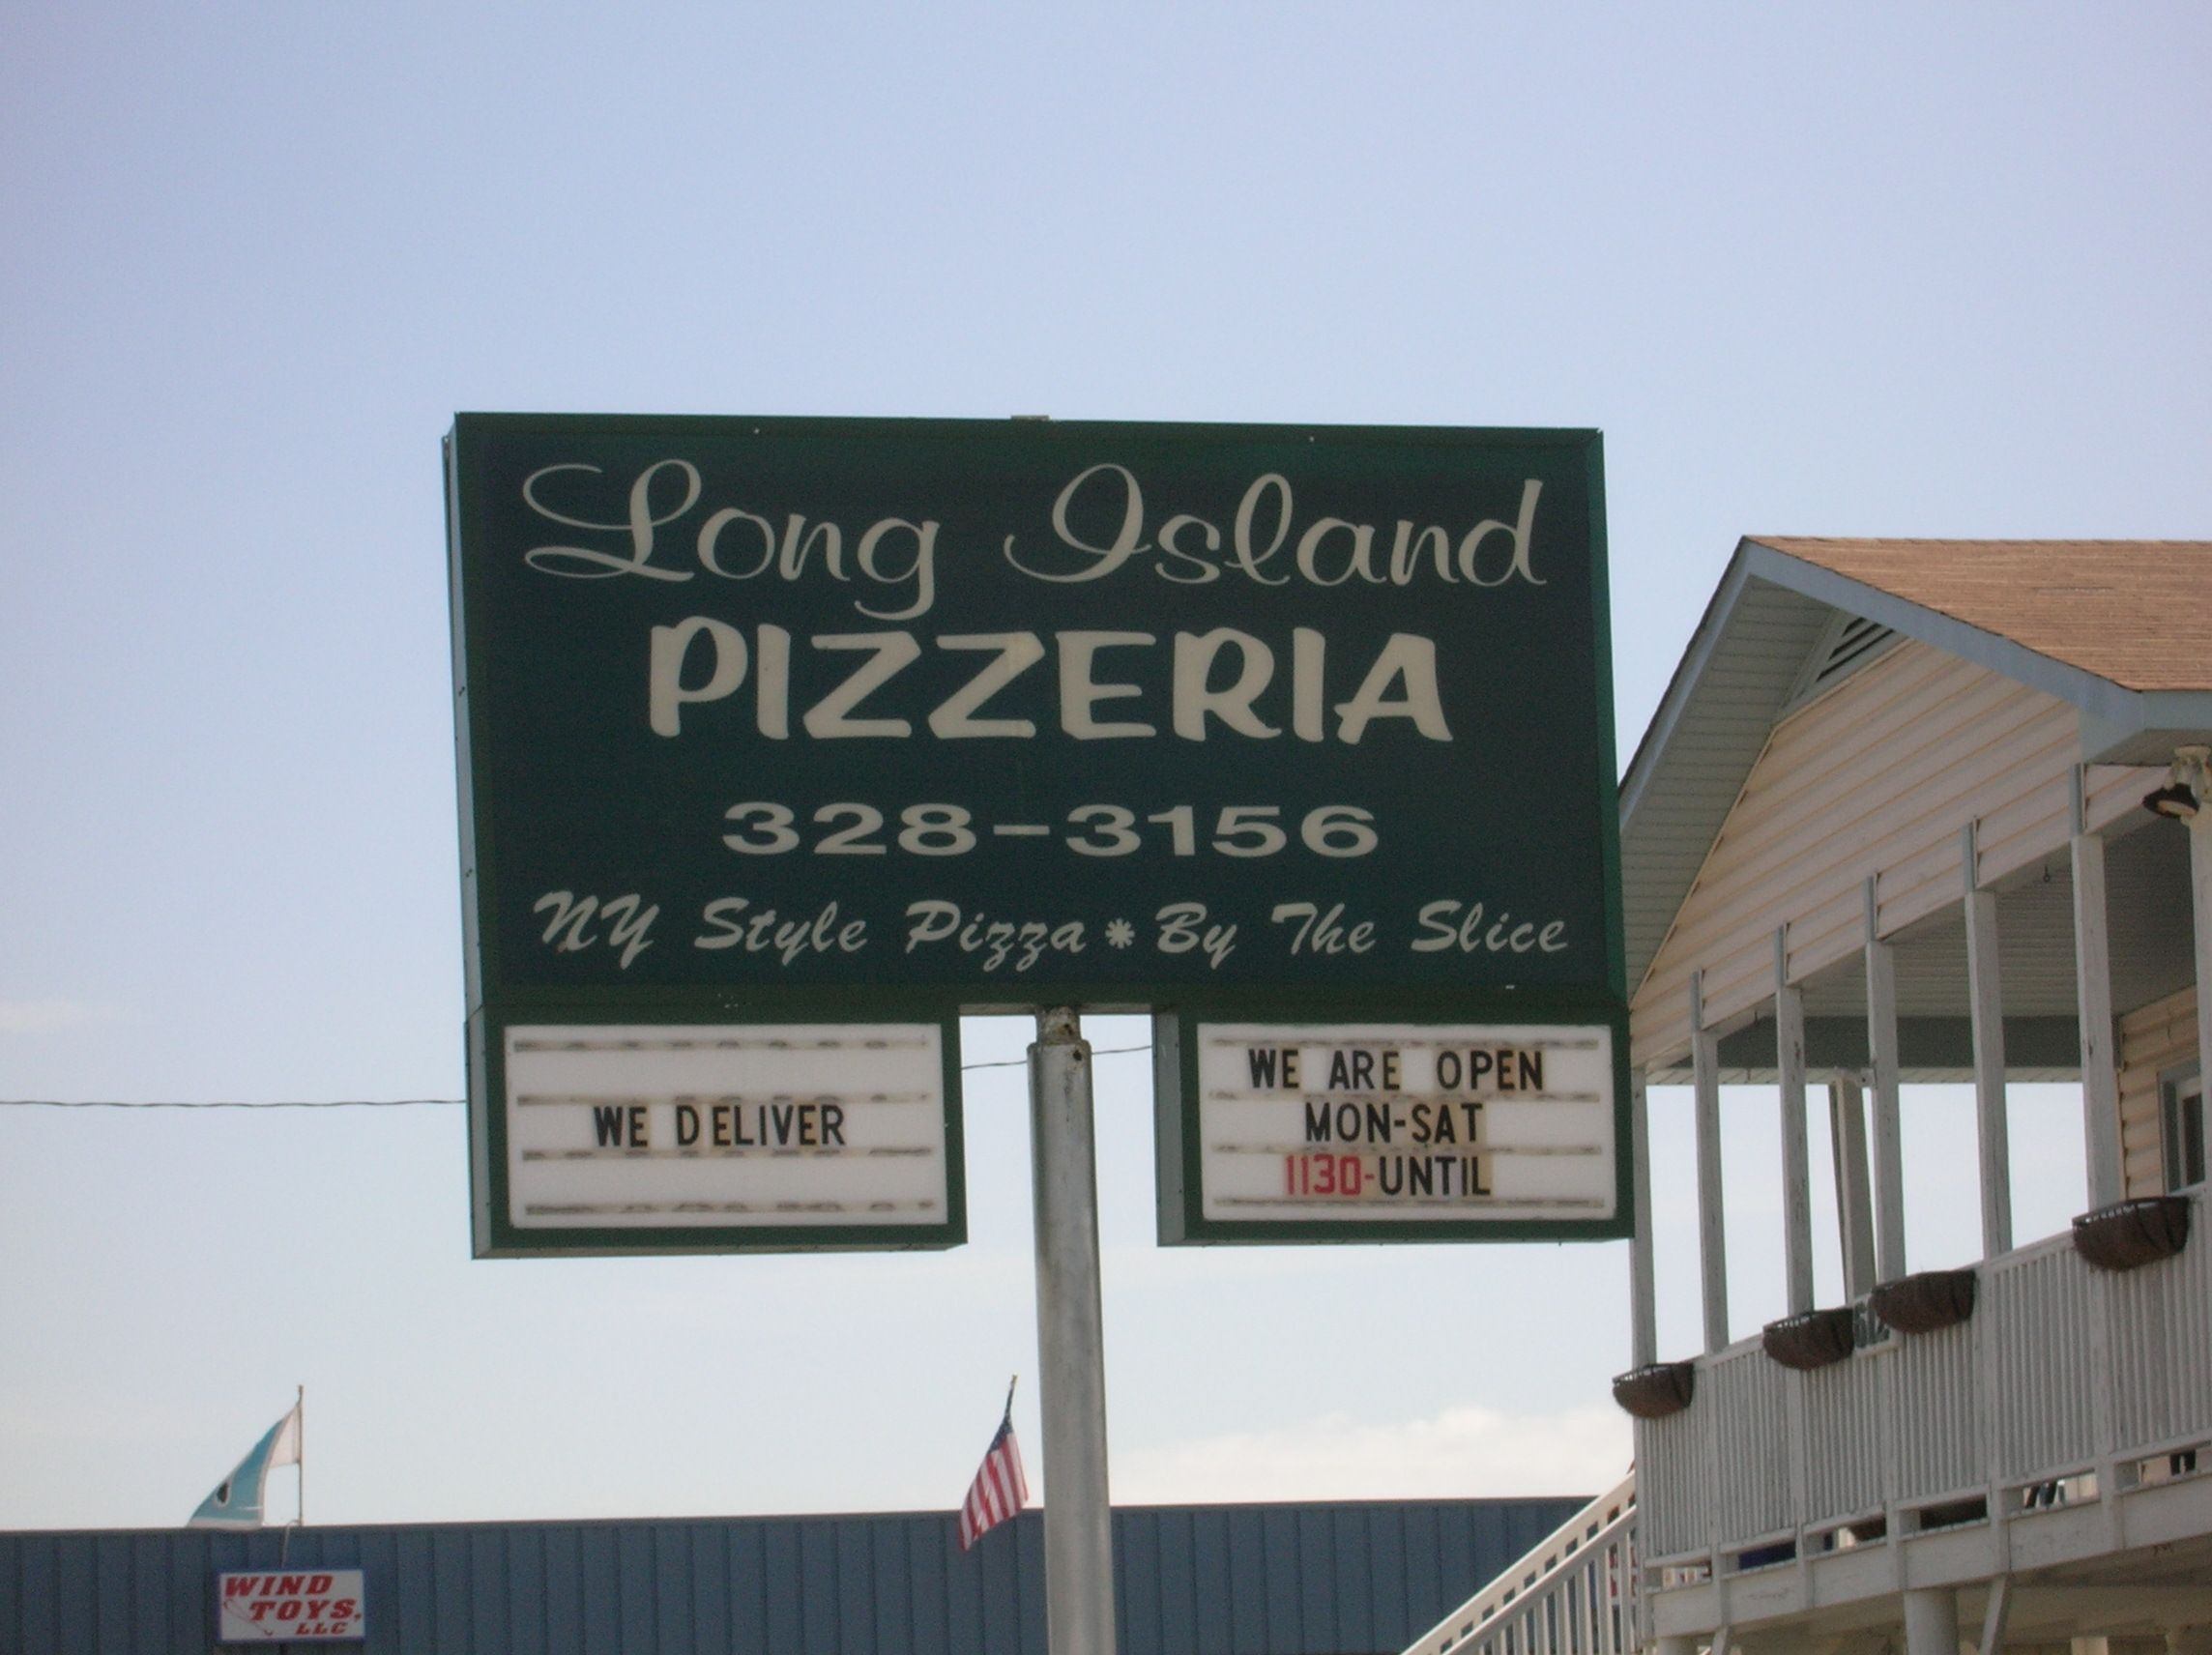 Long Island Pizza In Surf City Topsail Island Surf City Nc Topsail Island Surf City